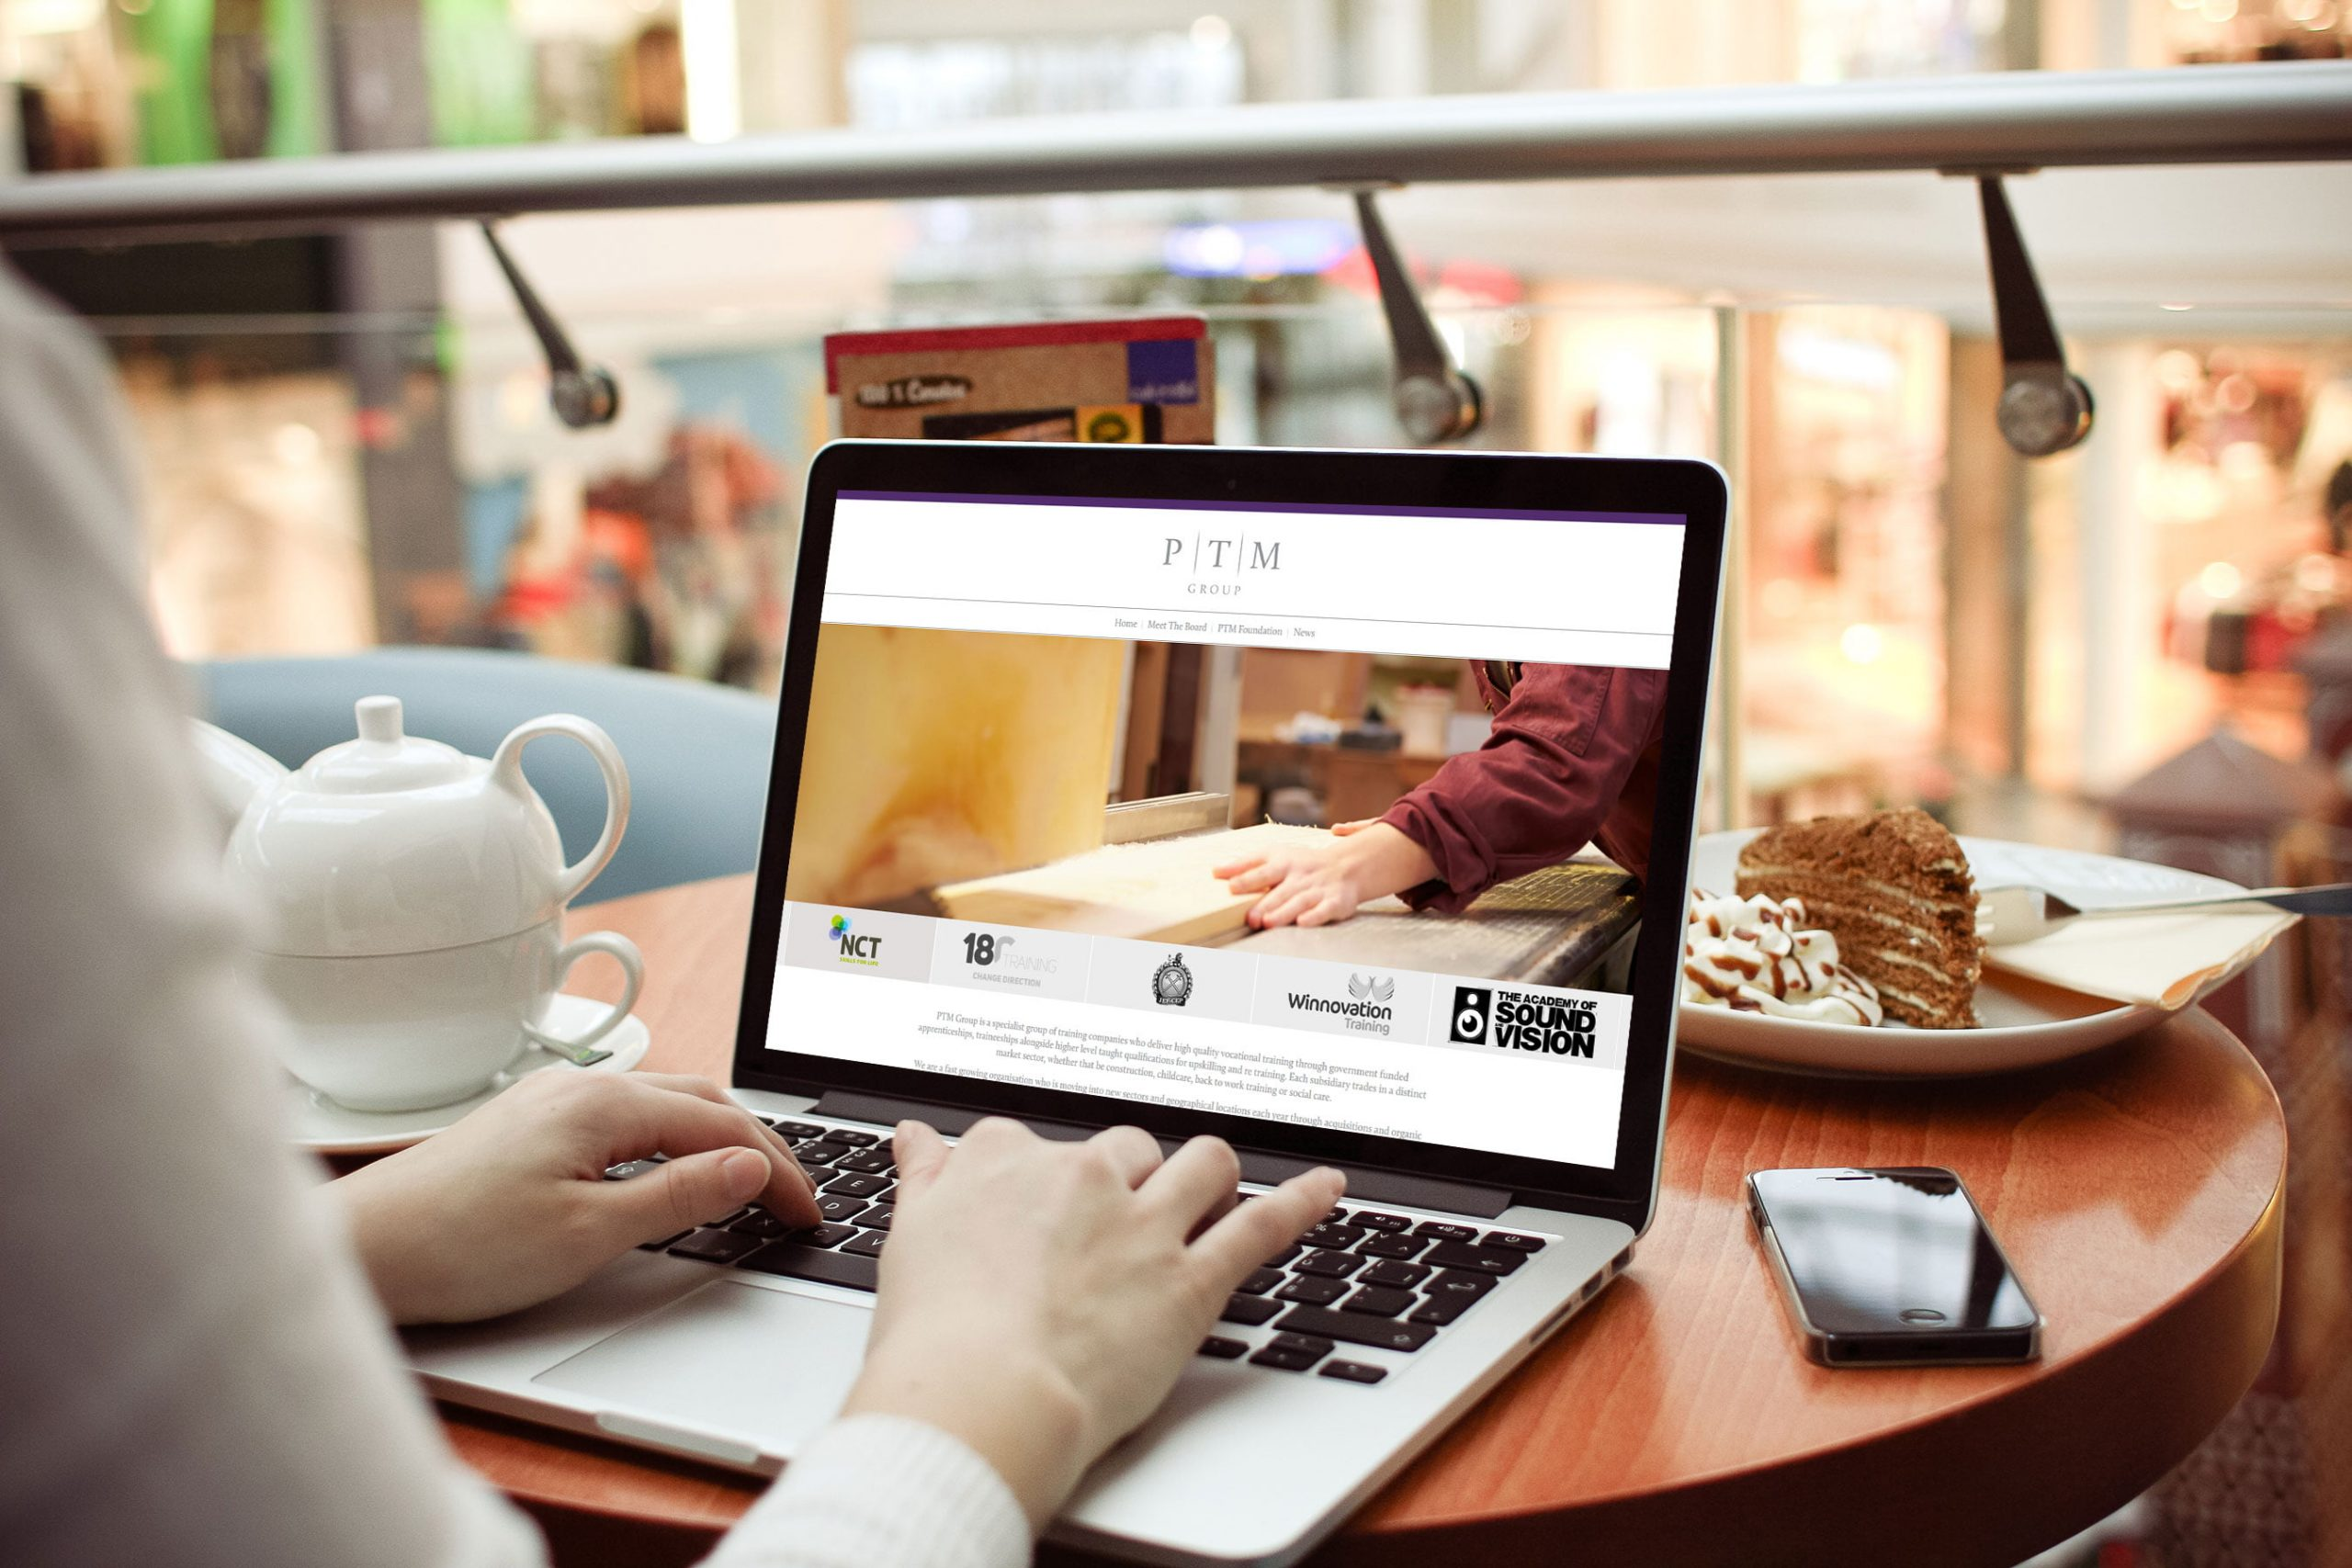 PTM Group website being viewed by person on laptop